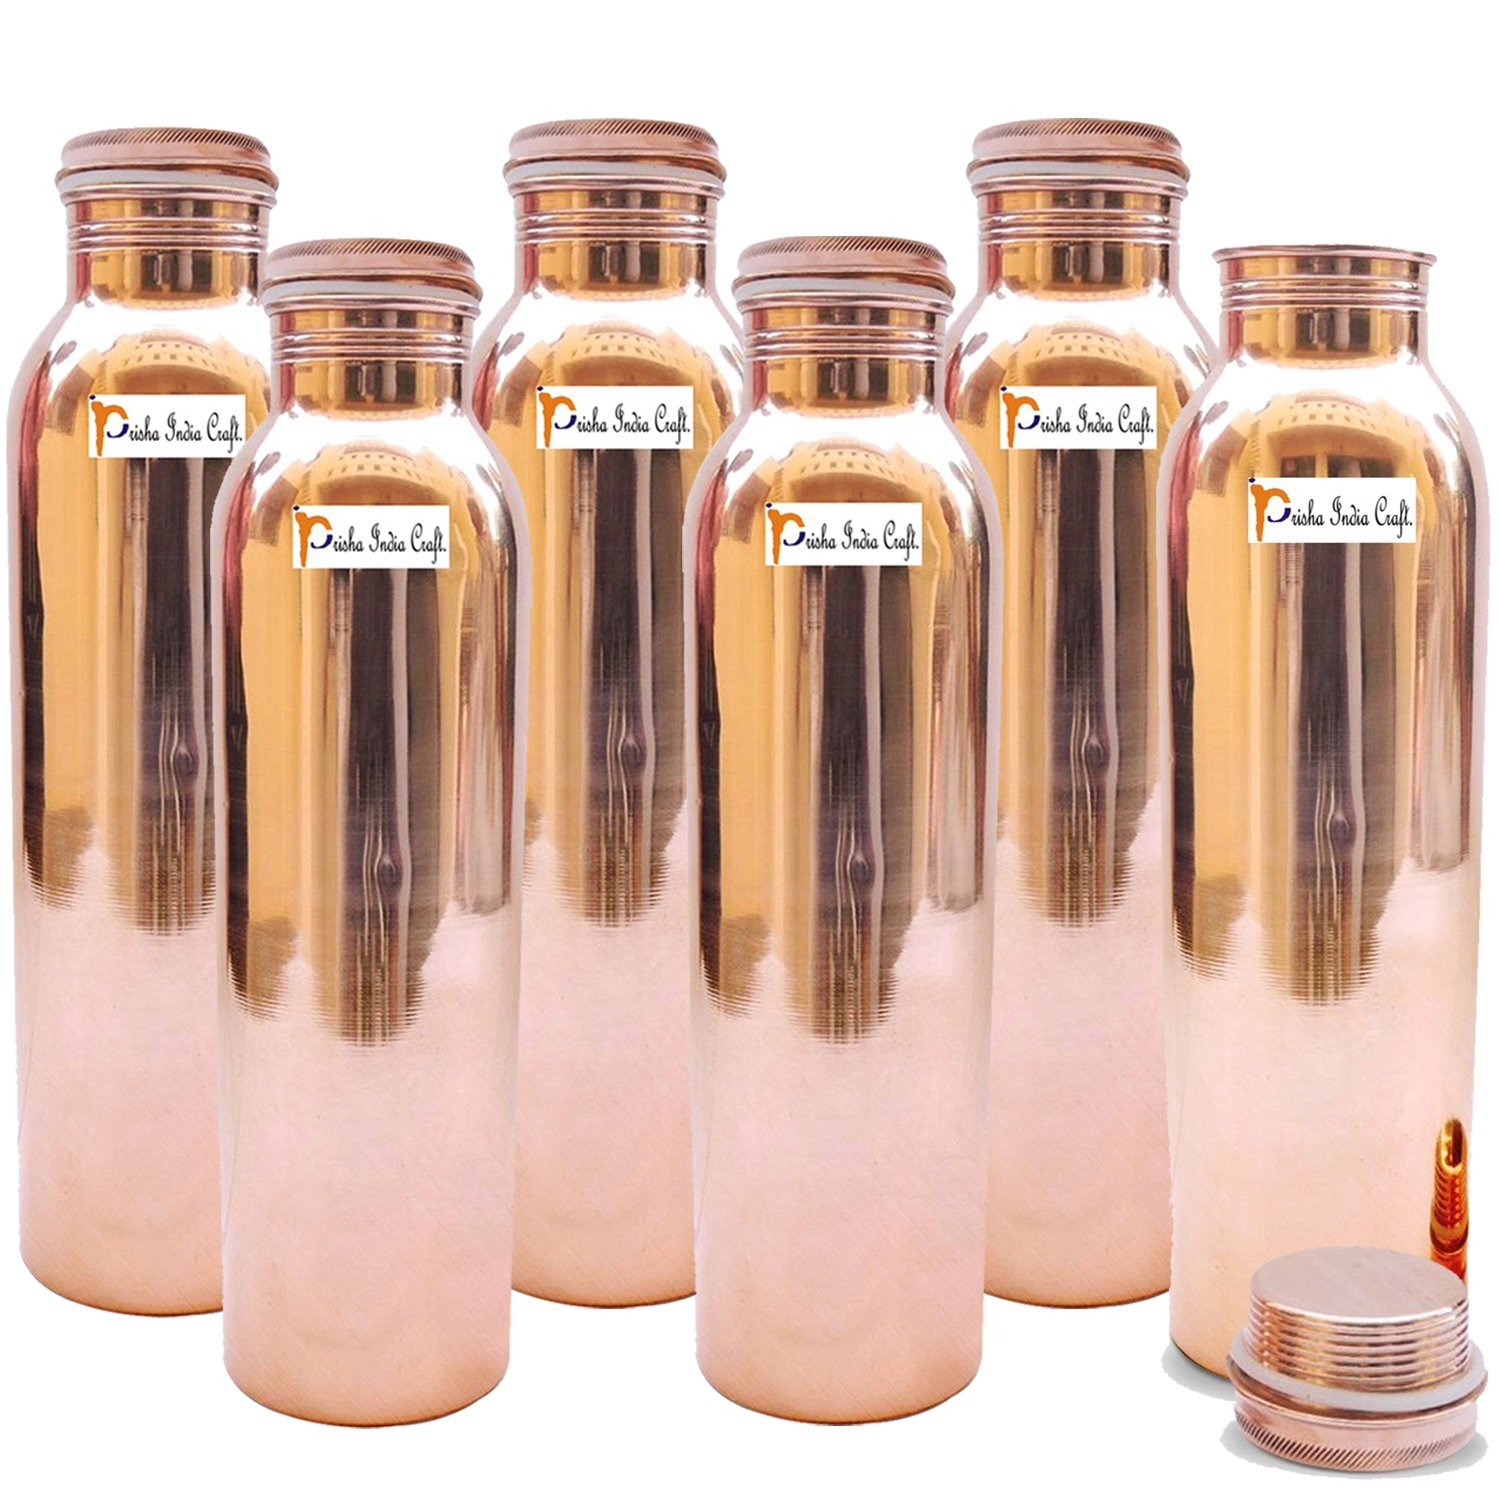 1150ml / 38.89oz - Set of 6 - Prisha India Craft Pure Copper Water Bottle for Health Benefits - Water Bottles Joint Free, Handmade - Christmas Gift